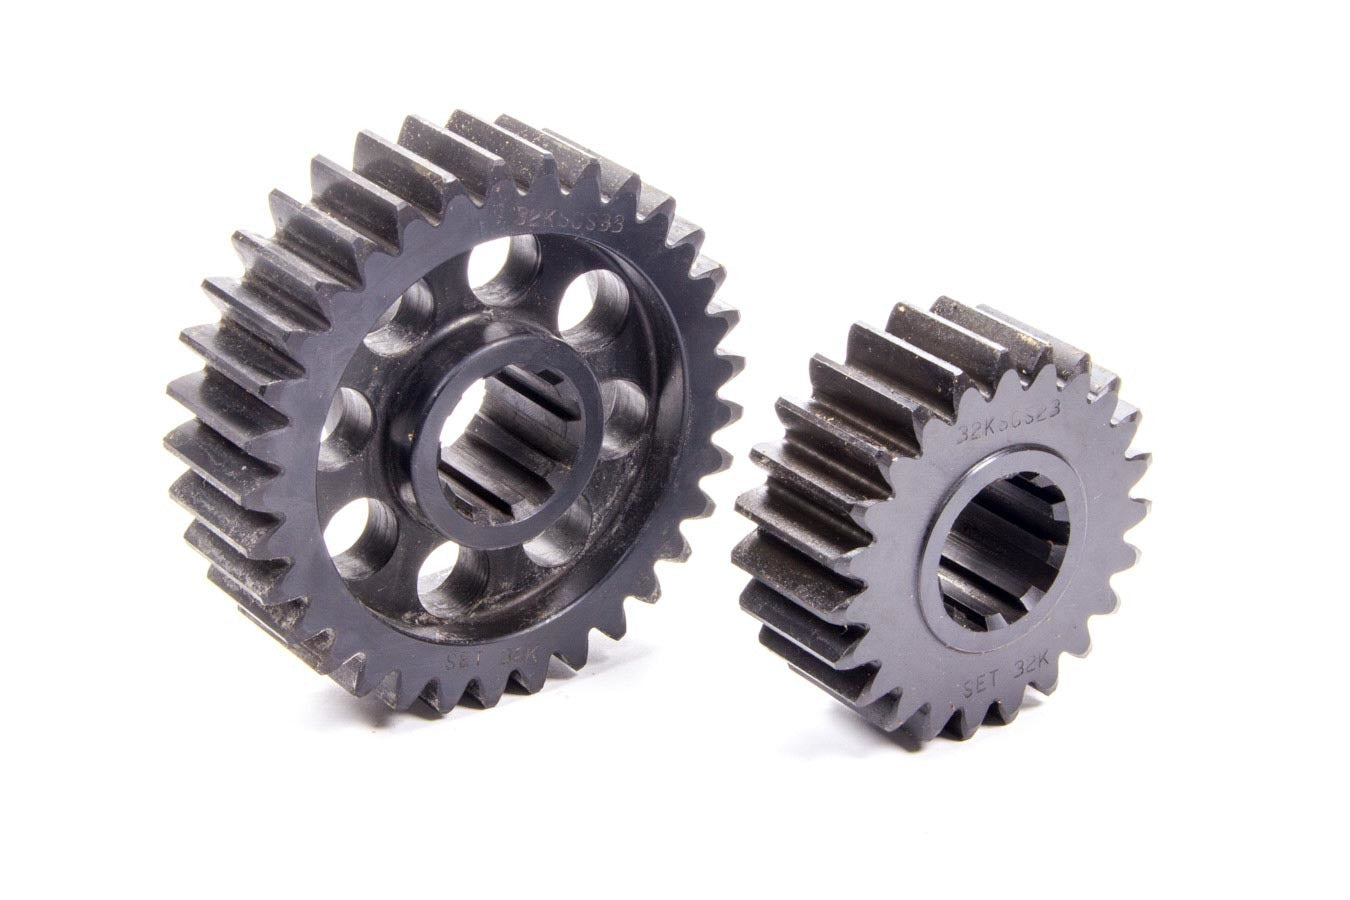 SCS Quick Change Gear Set 32K 10 Spline